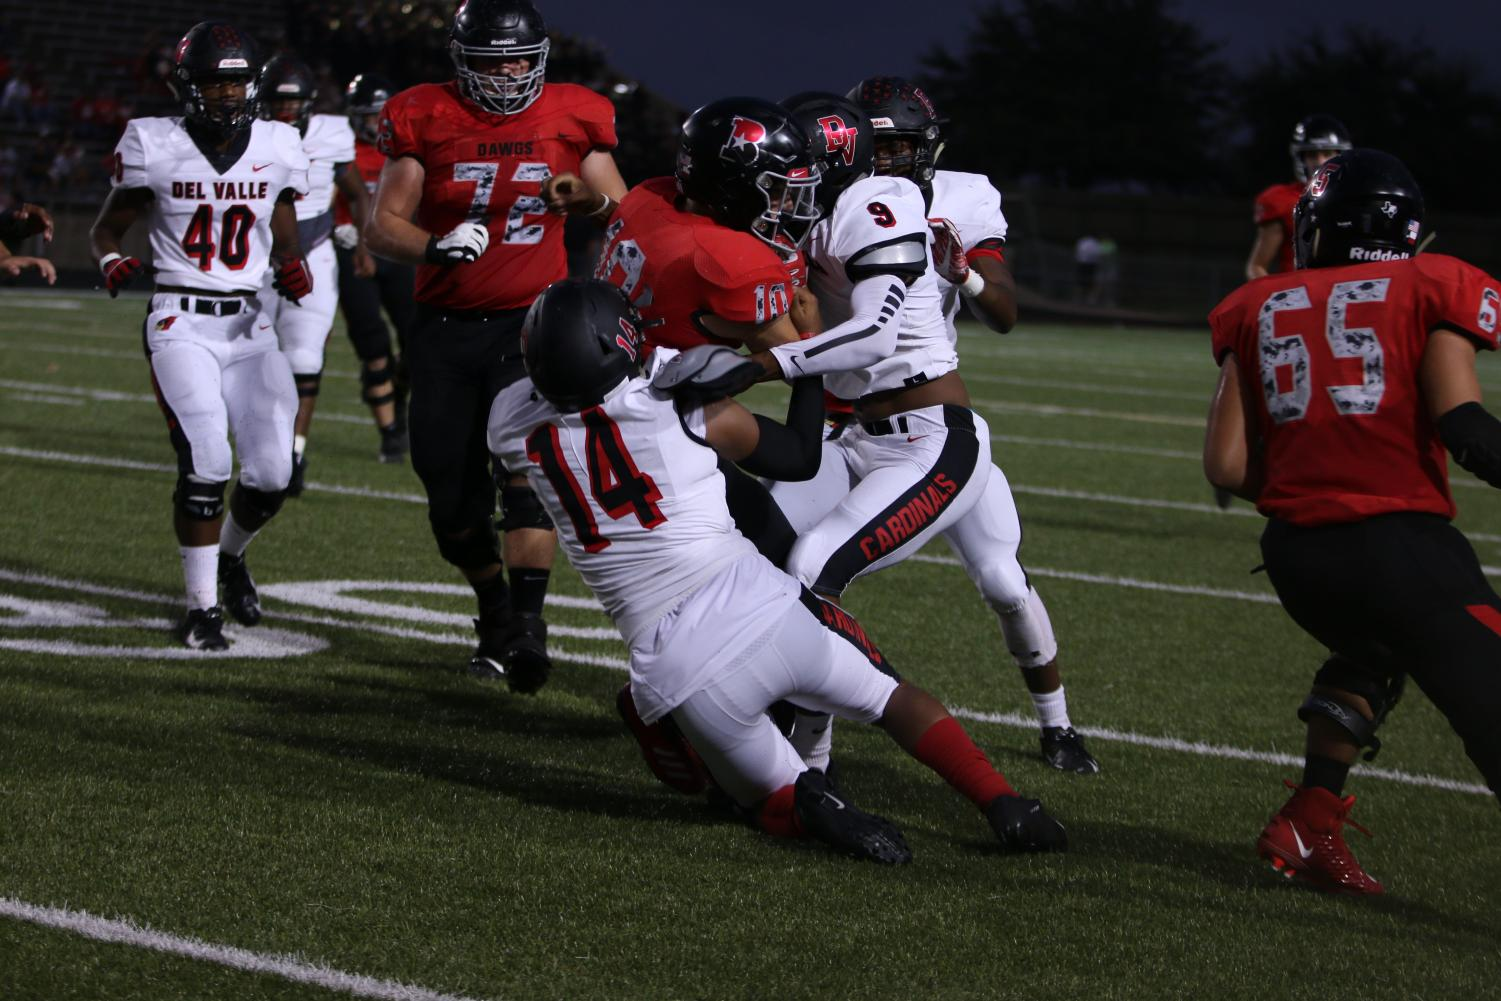 The varsity team tries to get the ball through Del Valle's defense. The play ended with a tackle, and the ball falling.